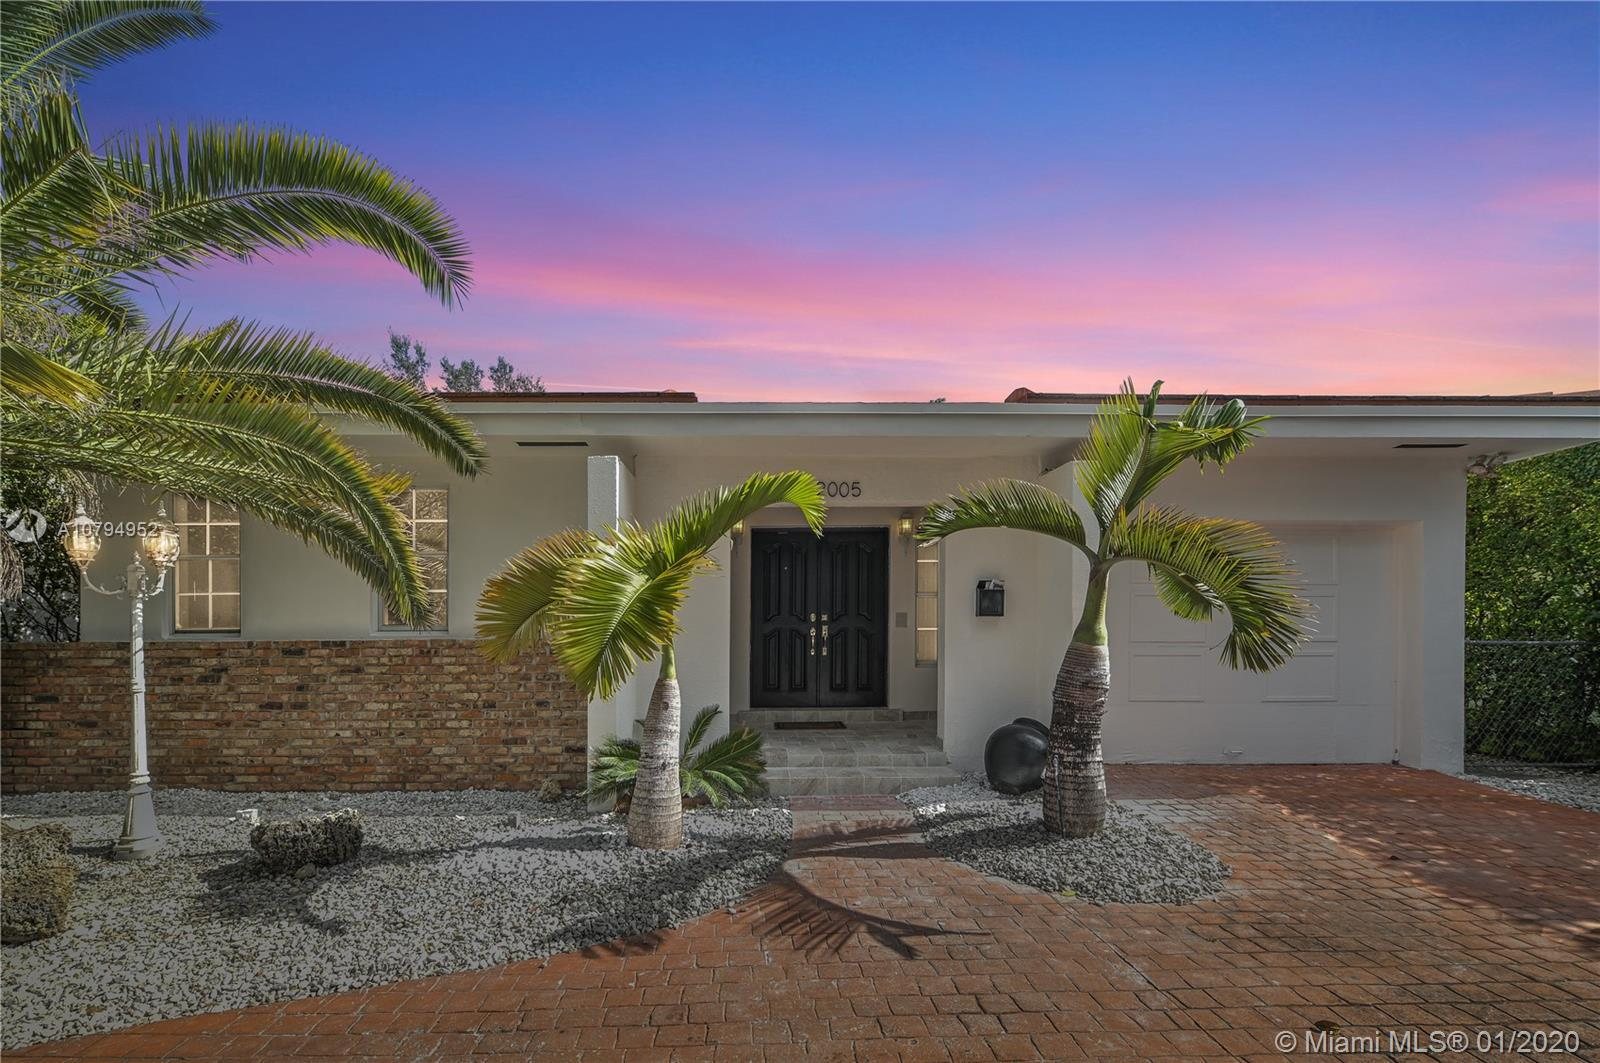 2005 Red Rd, Coral Gables, FL, 33155